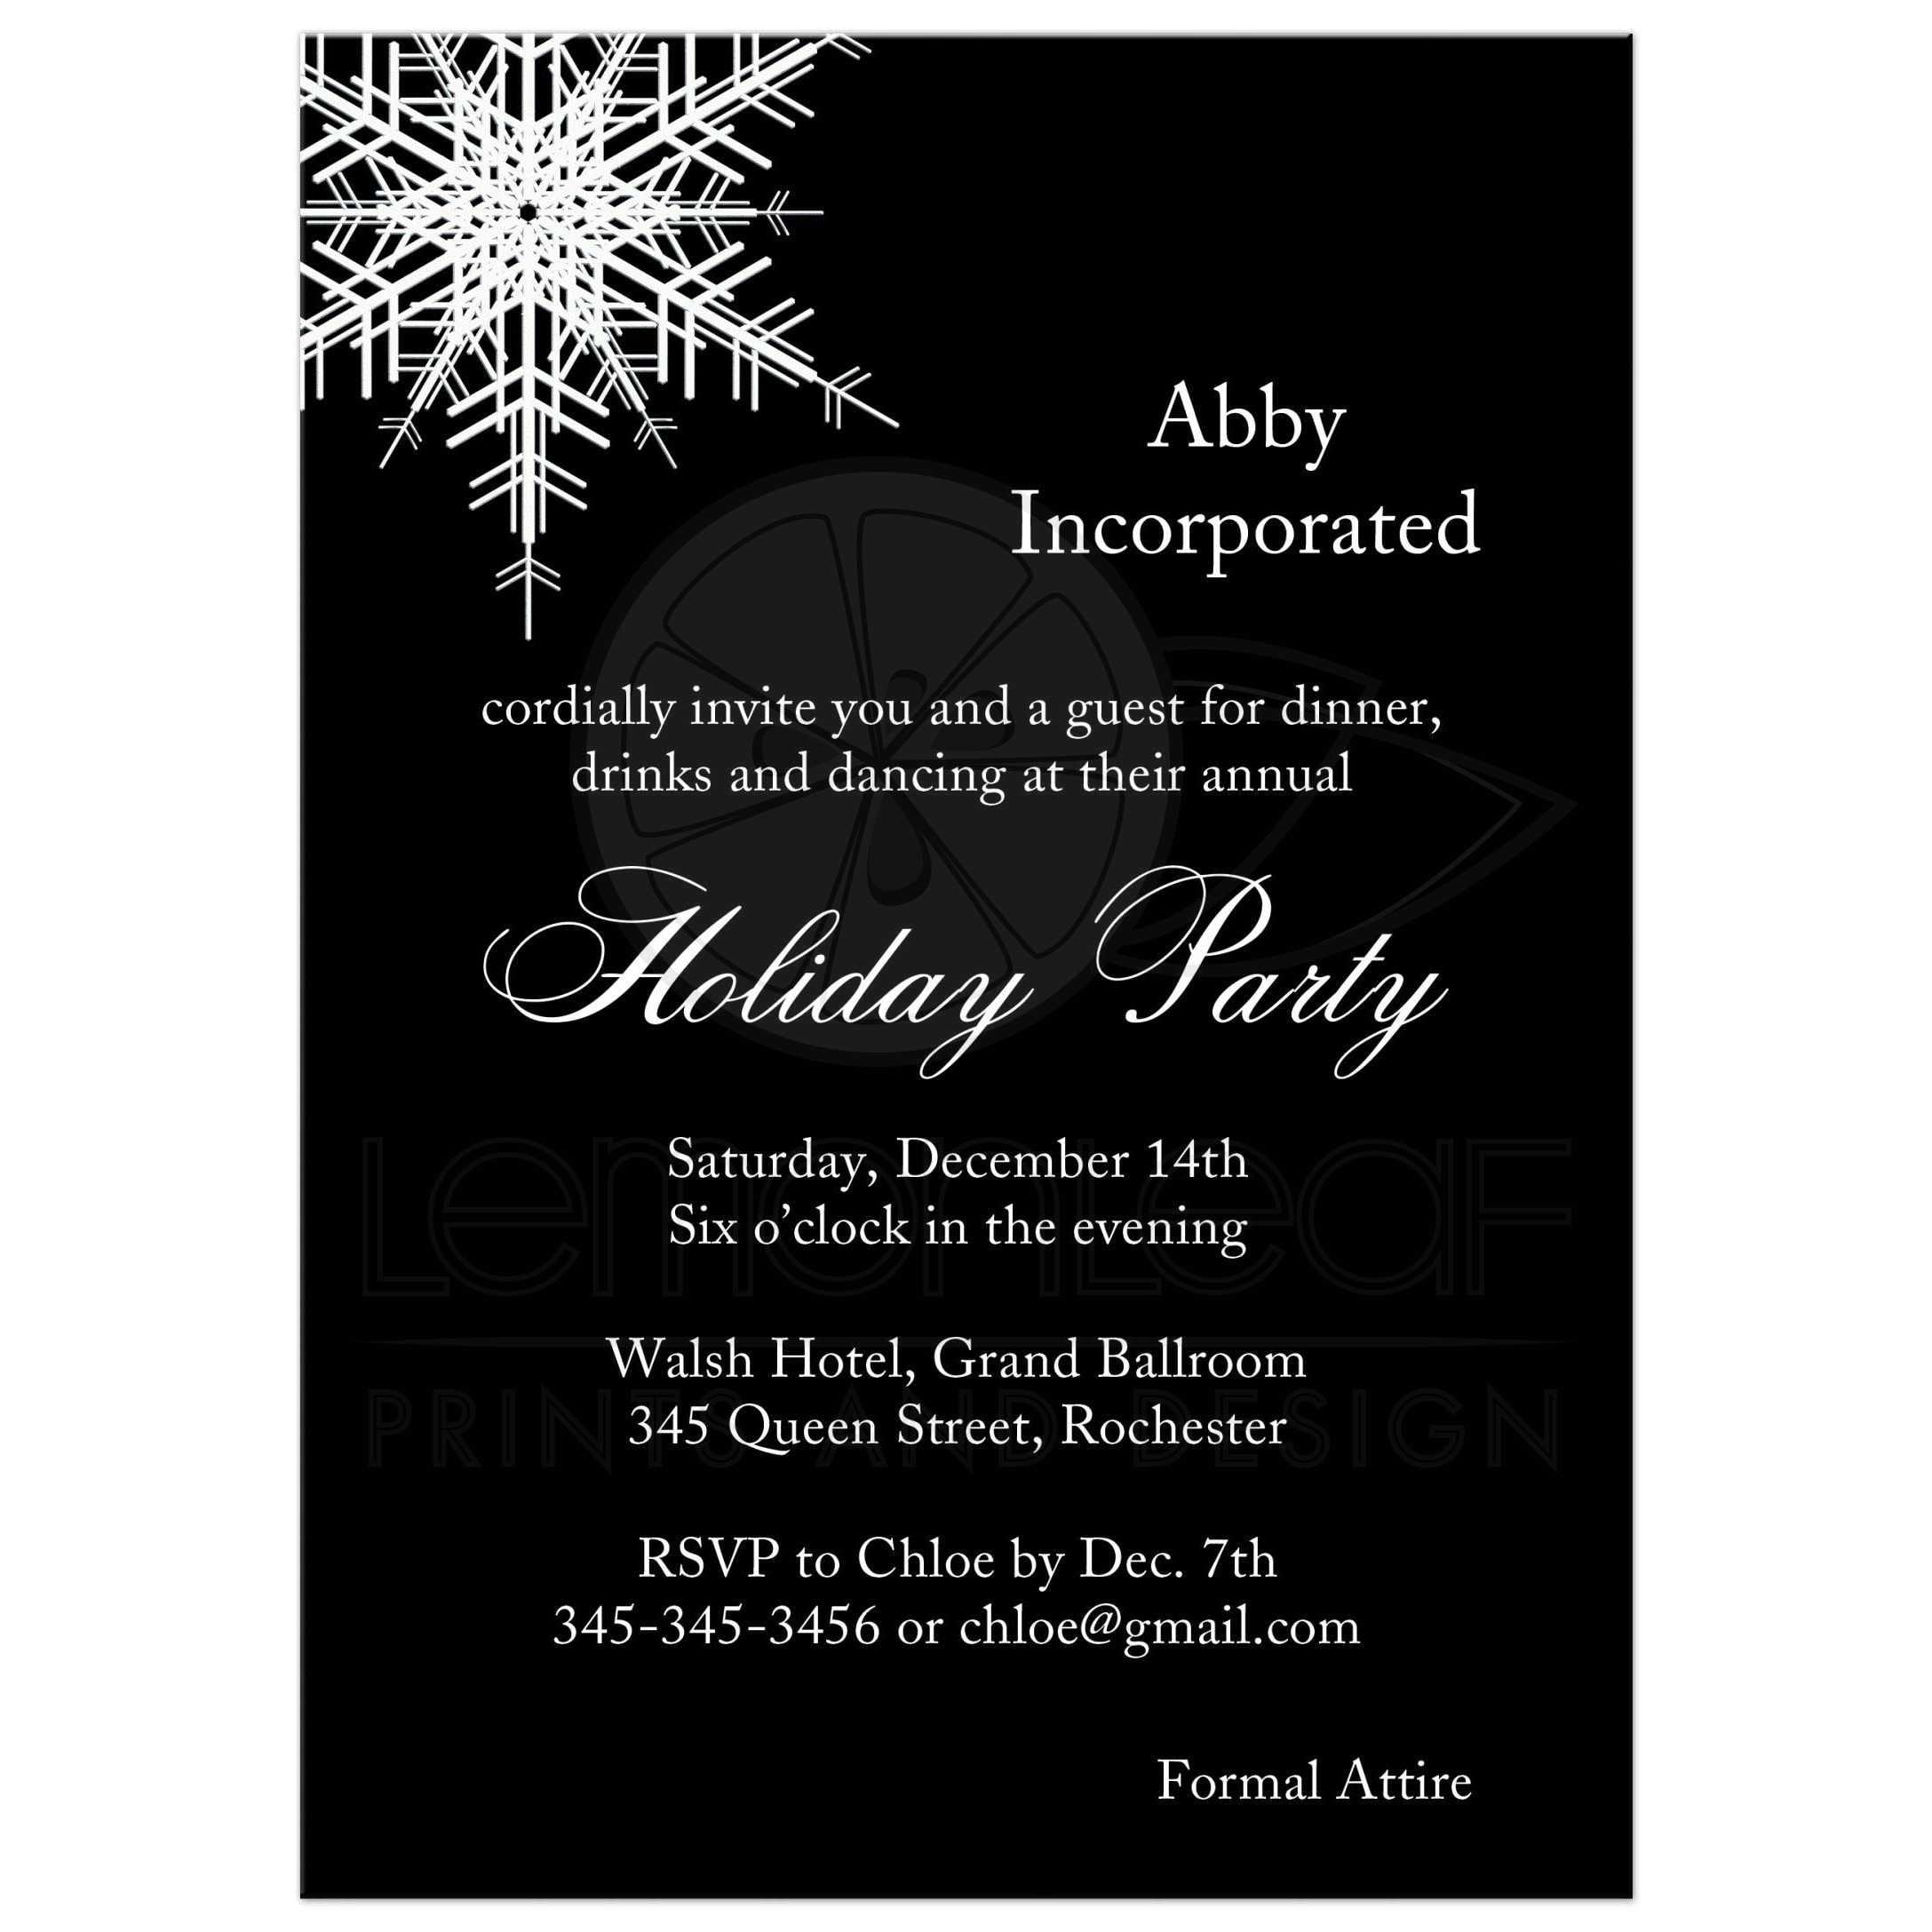 Dinner Party Invitations Best Of Corporate Party Invitation